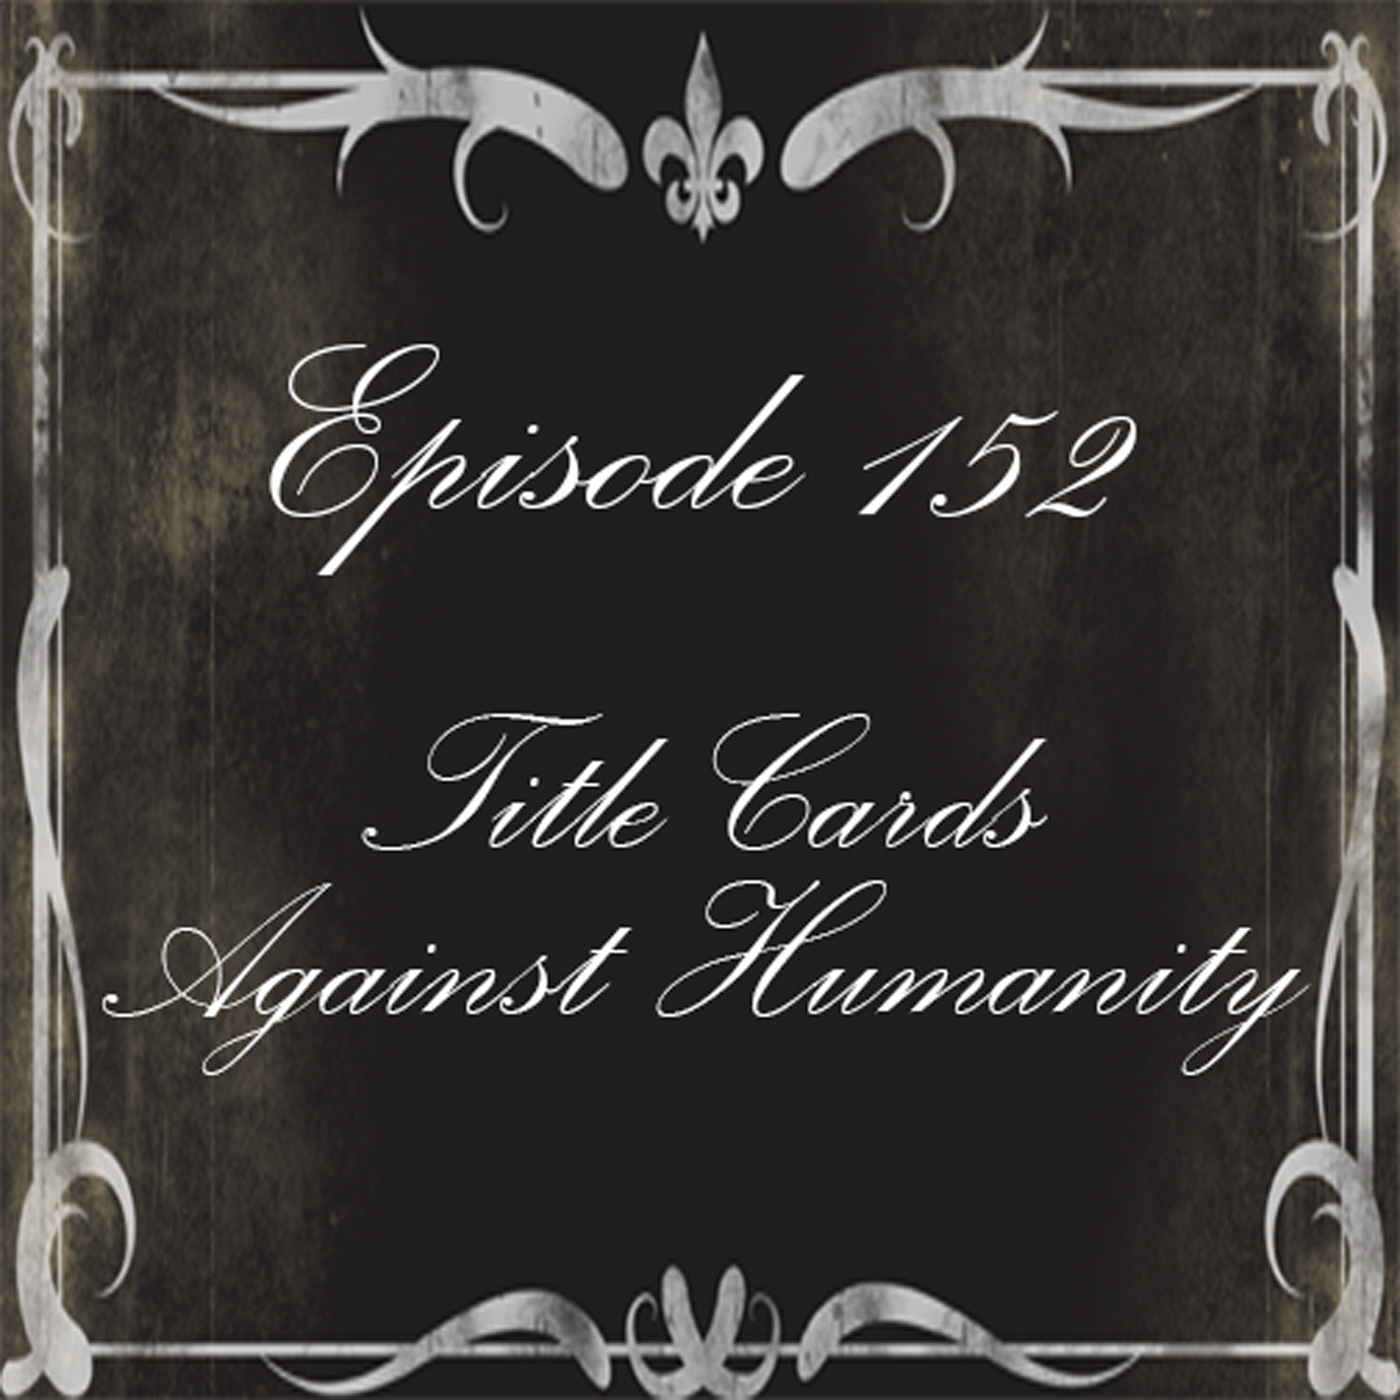 Episide 152 - Title Cards against Humanity